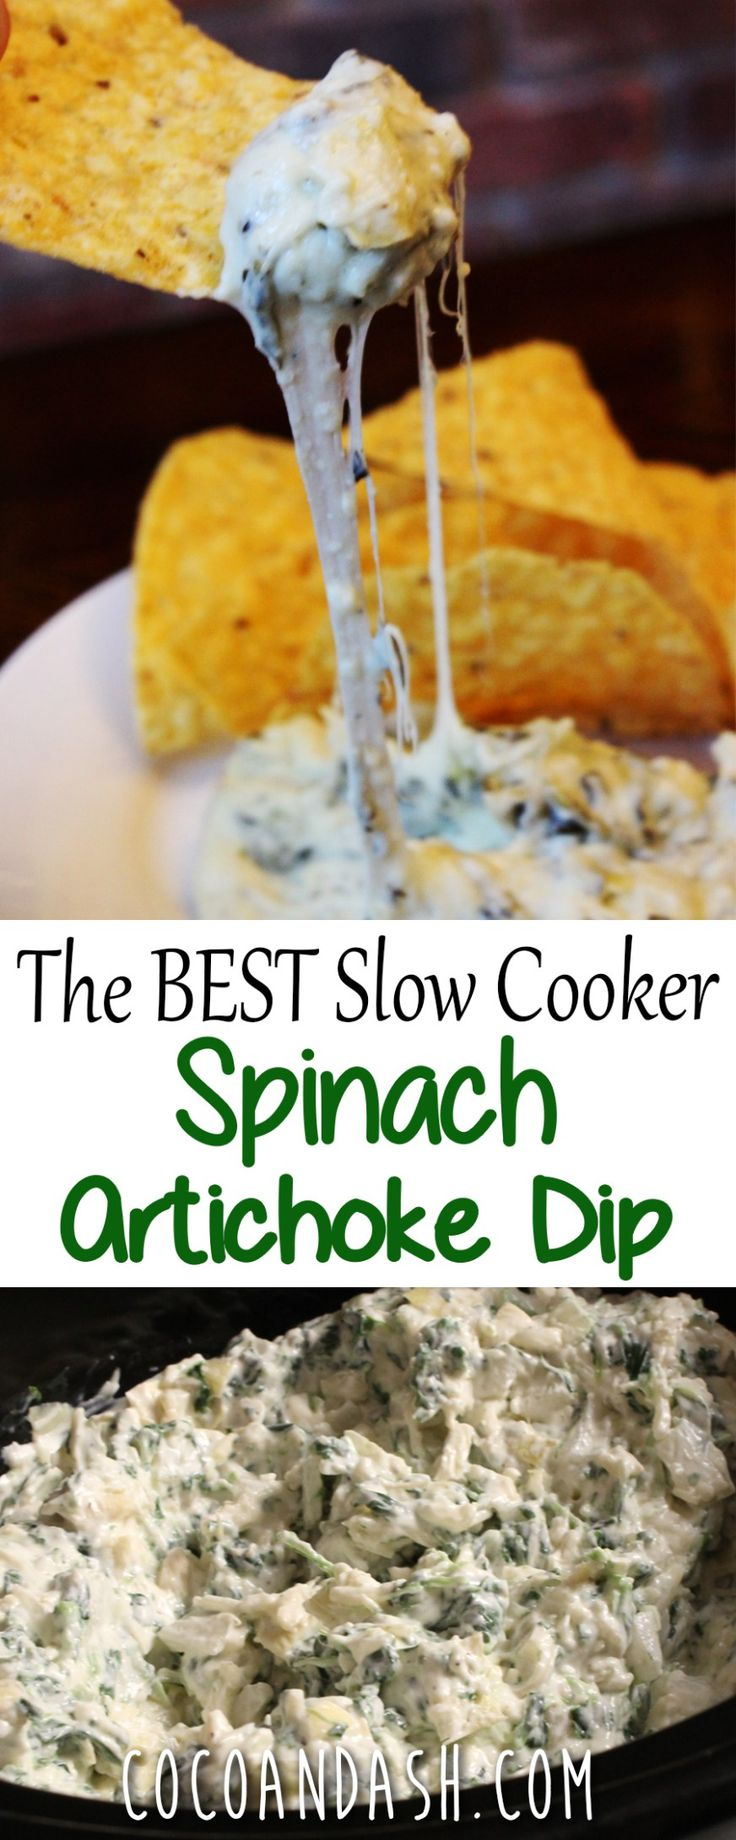 Slow cooker spinach artichoke dip- sub onion for 1 can green chilies. Didn't add mozzarella.